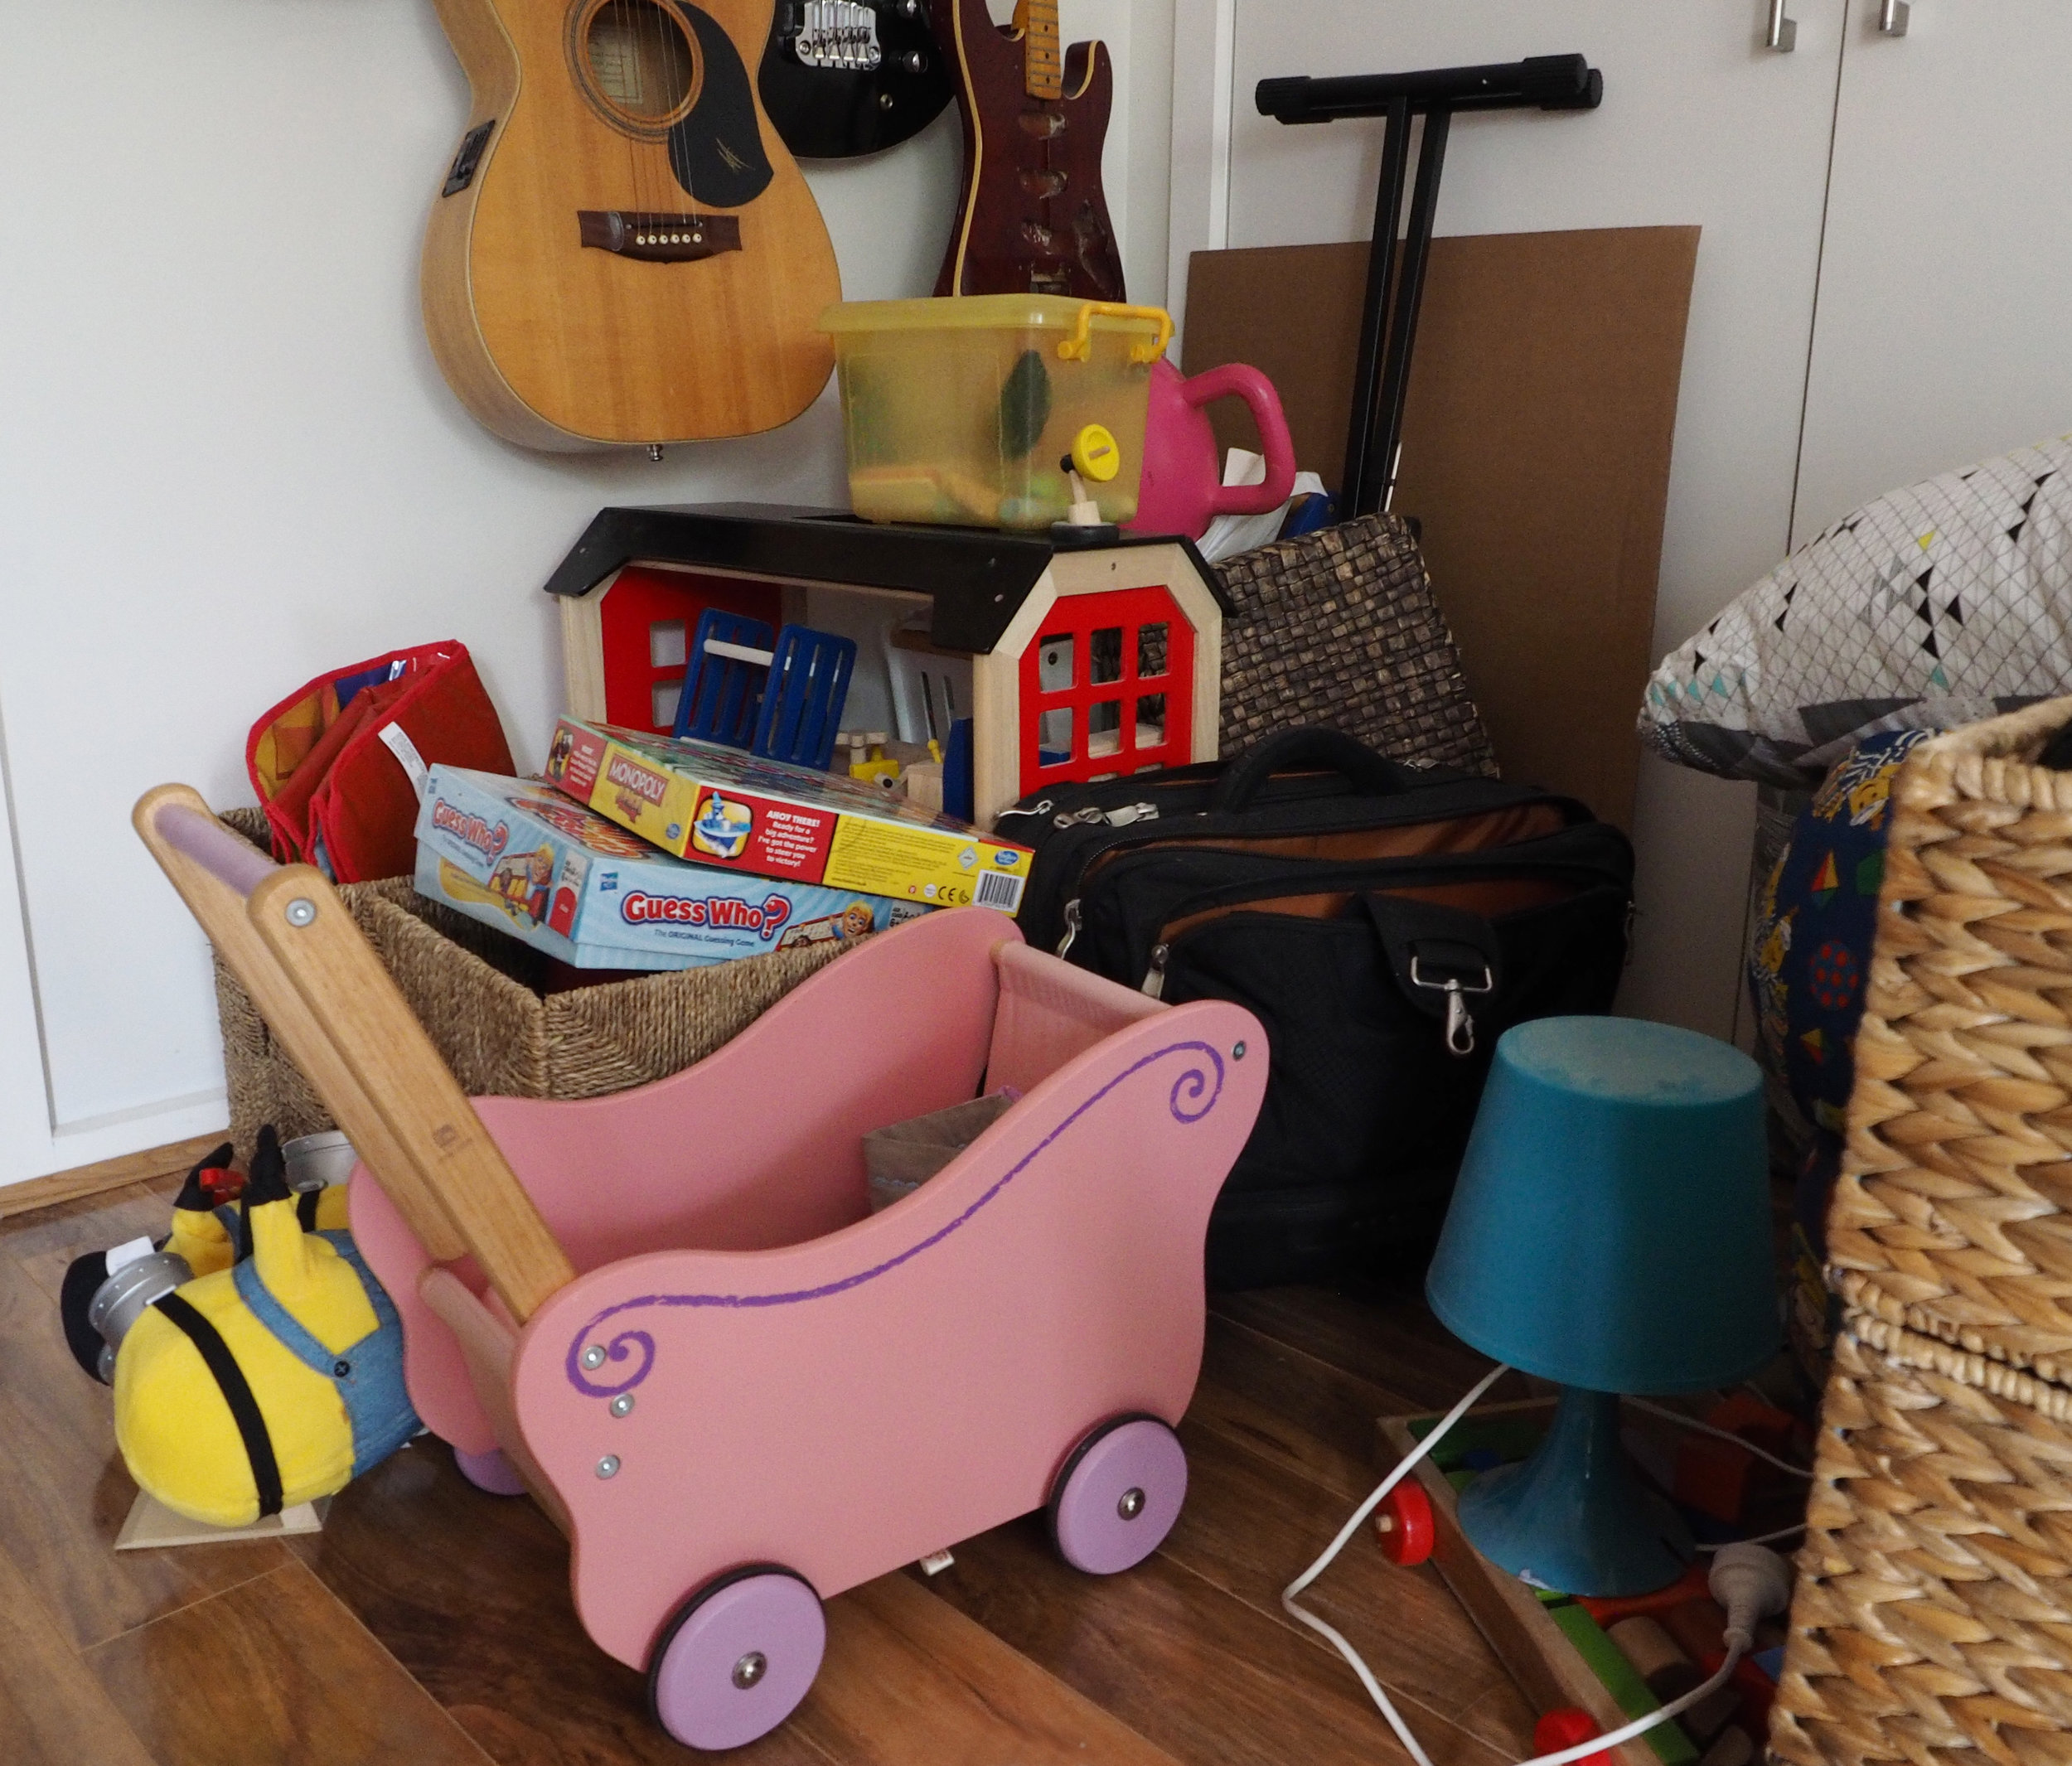 Storing larger toys elsewhere to maximize storage space in bedrooms